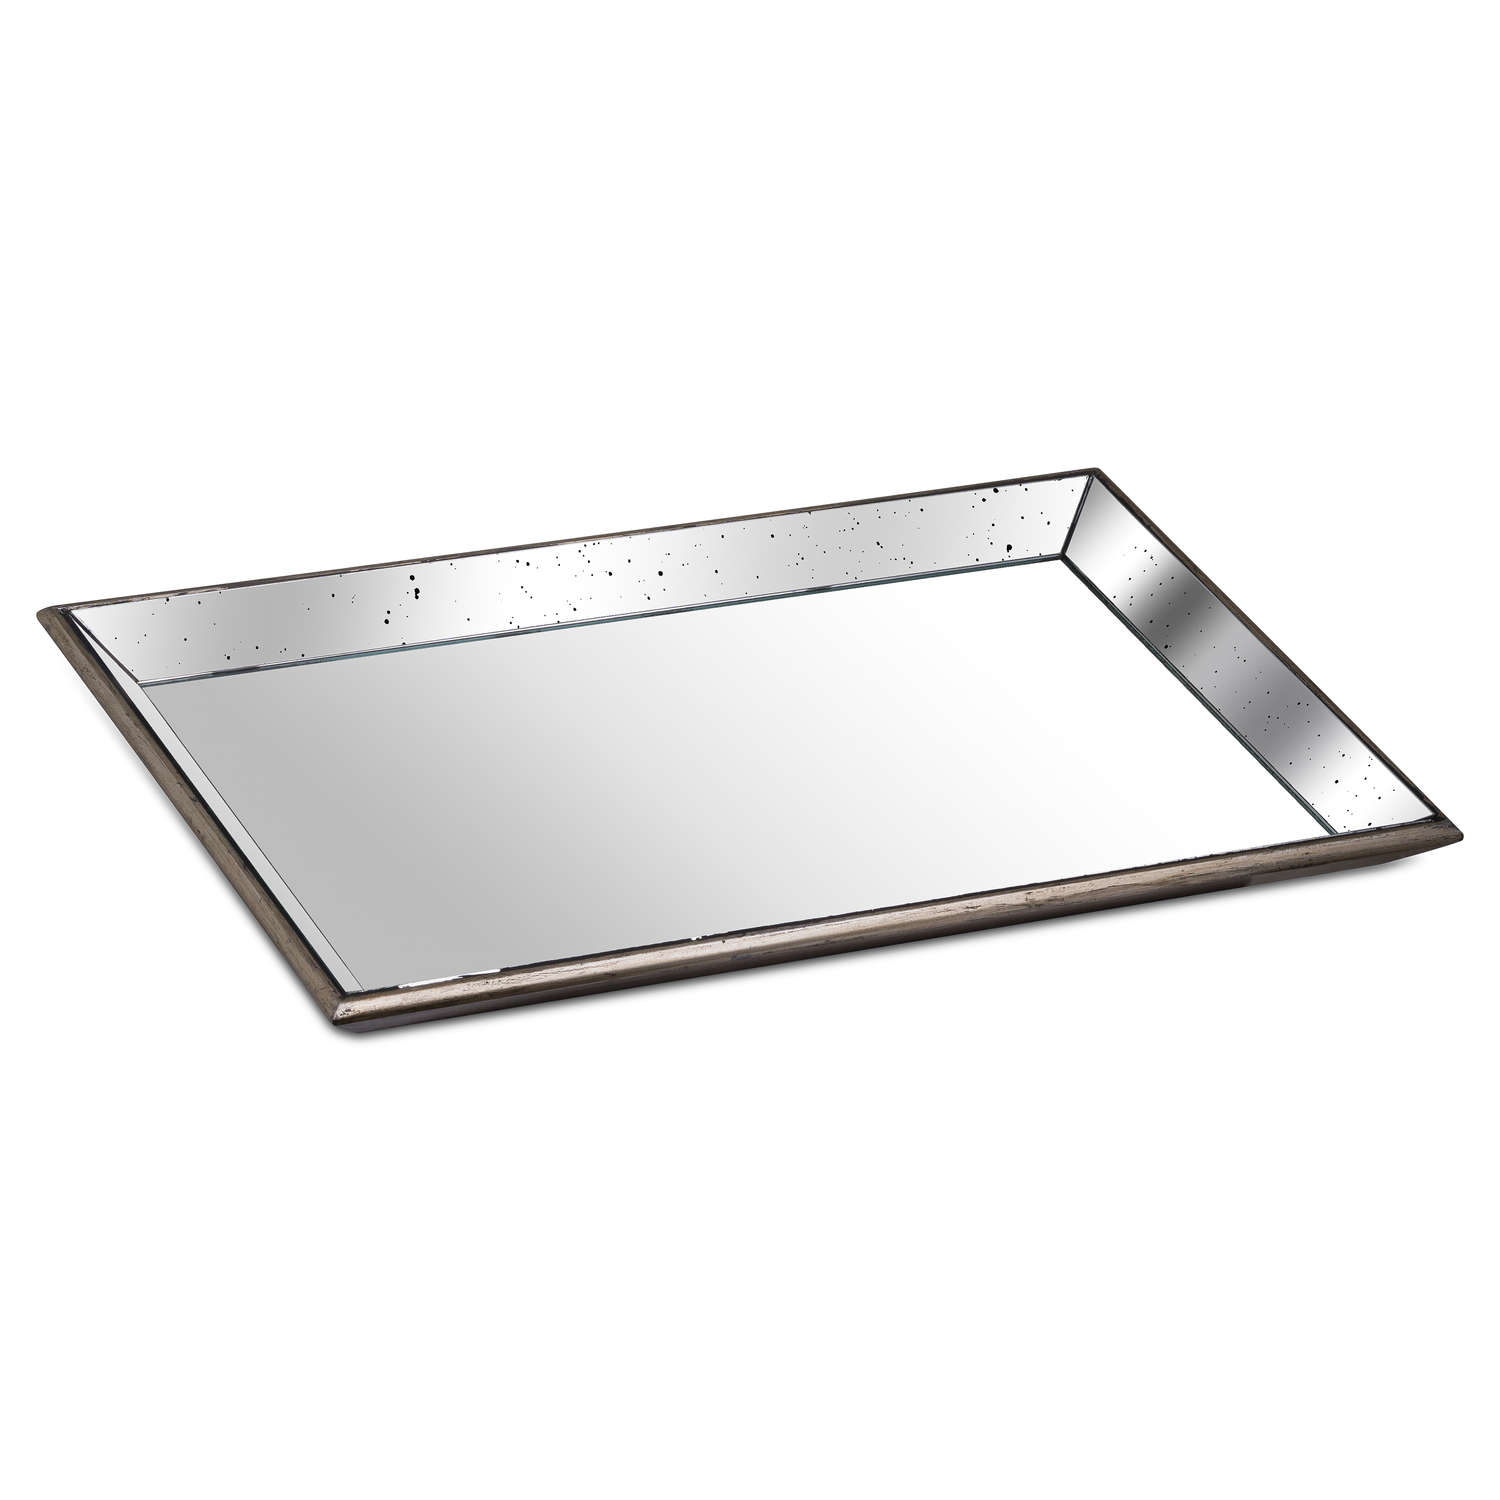 Astor Distressed Large Mirrored Tray With Wooden Detailing - Cosy Home Interiors